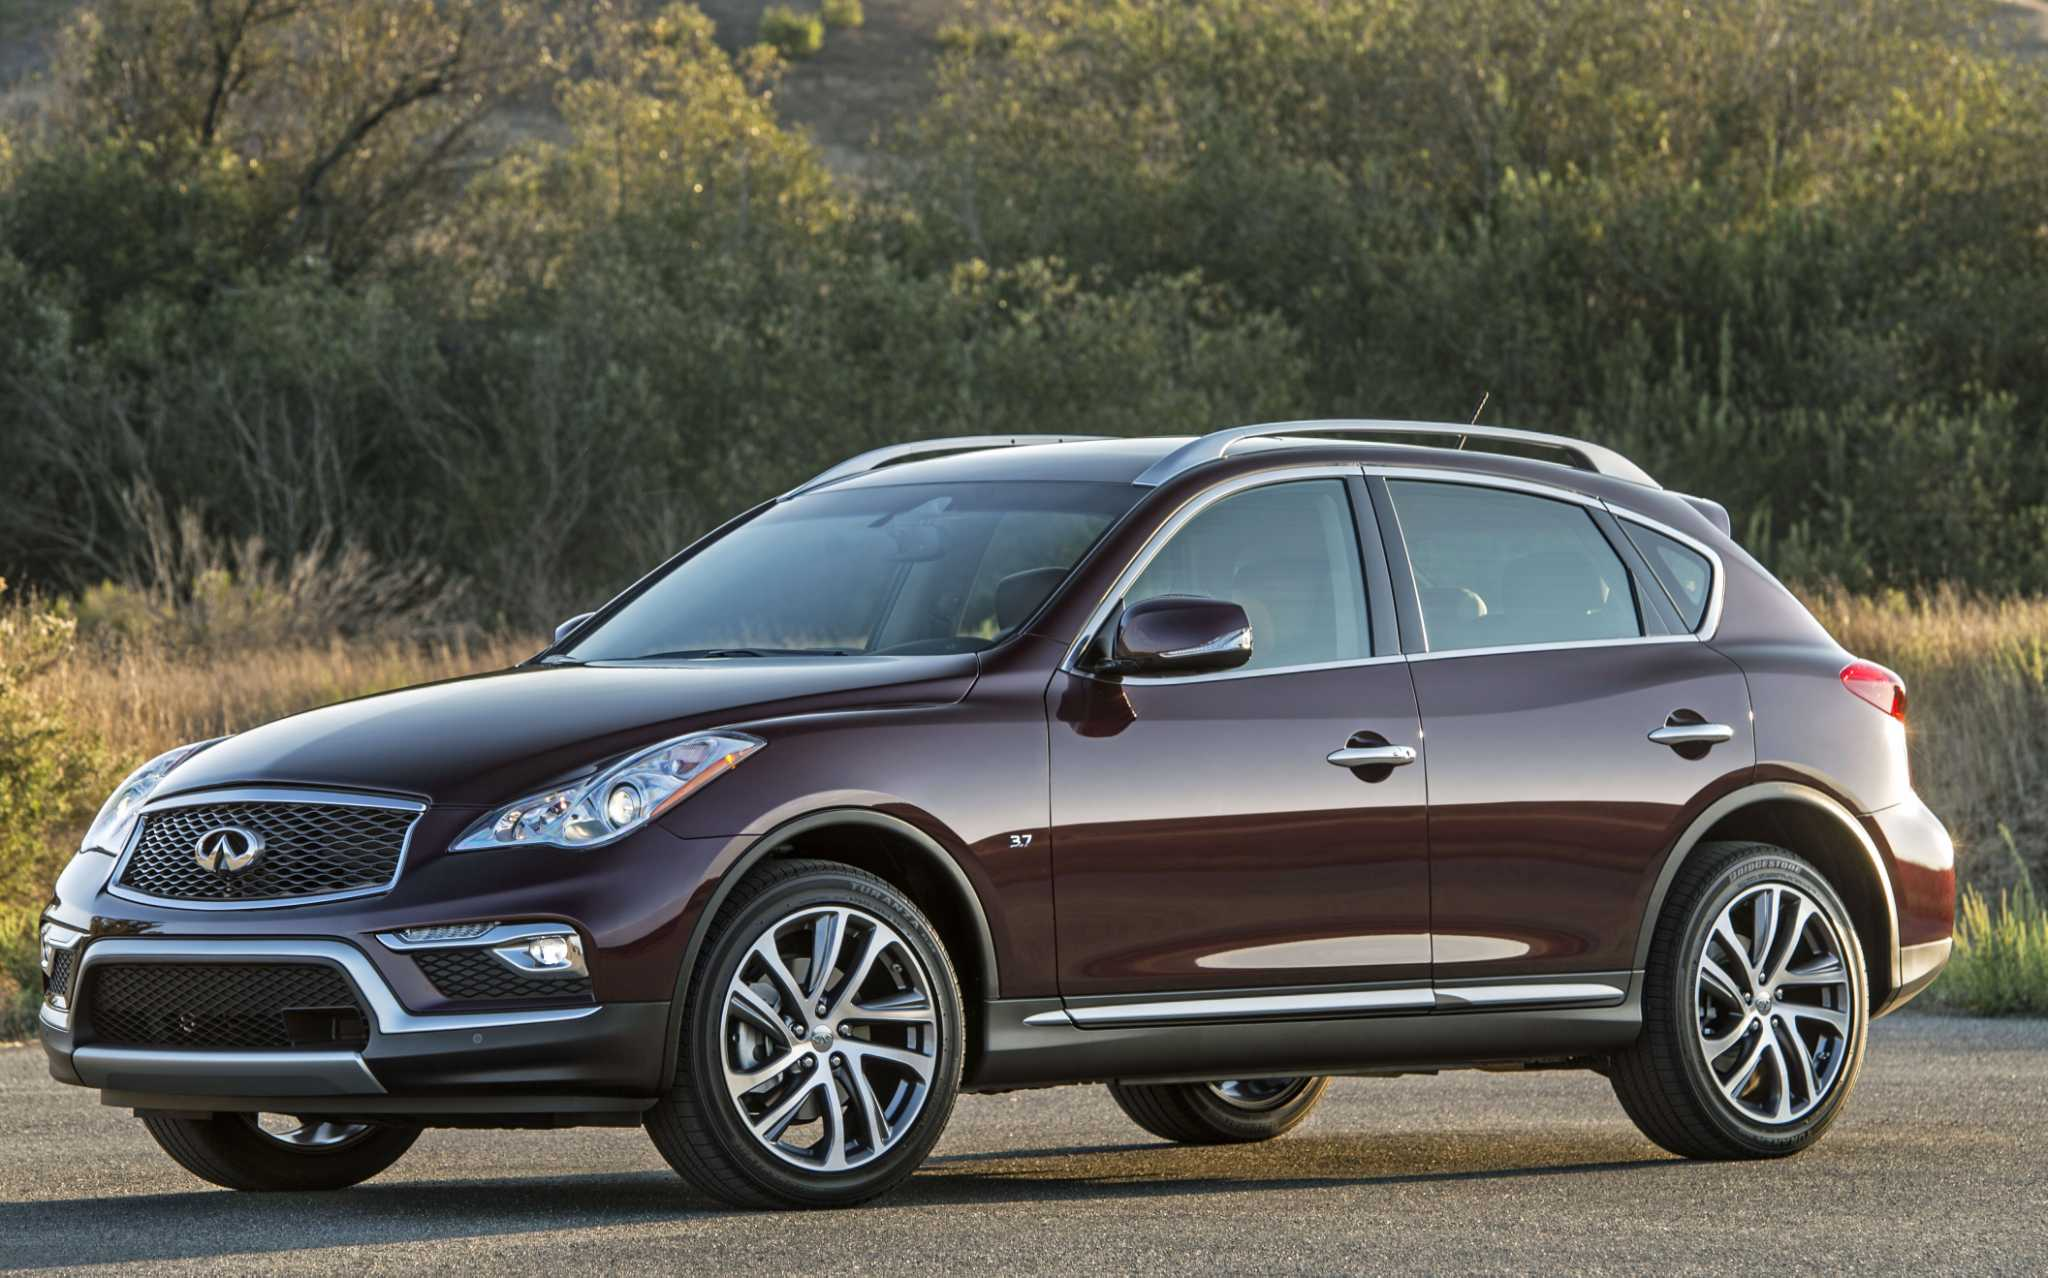 infiniti qx50 compact crossover returns for 2017 with prices beginning at 34 650 san antonio. Black Bedroom Furniture Sets. Home Design Ideas